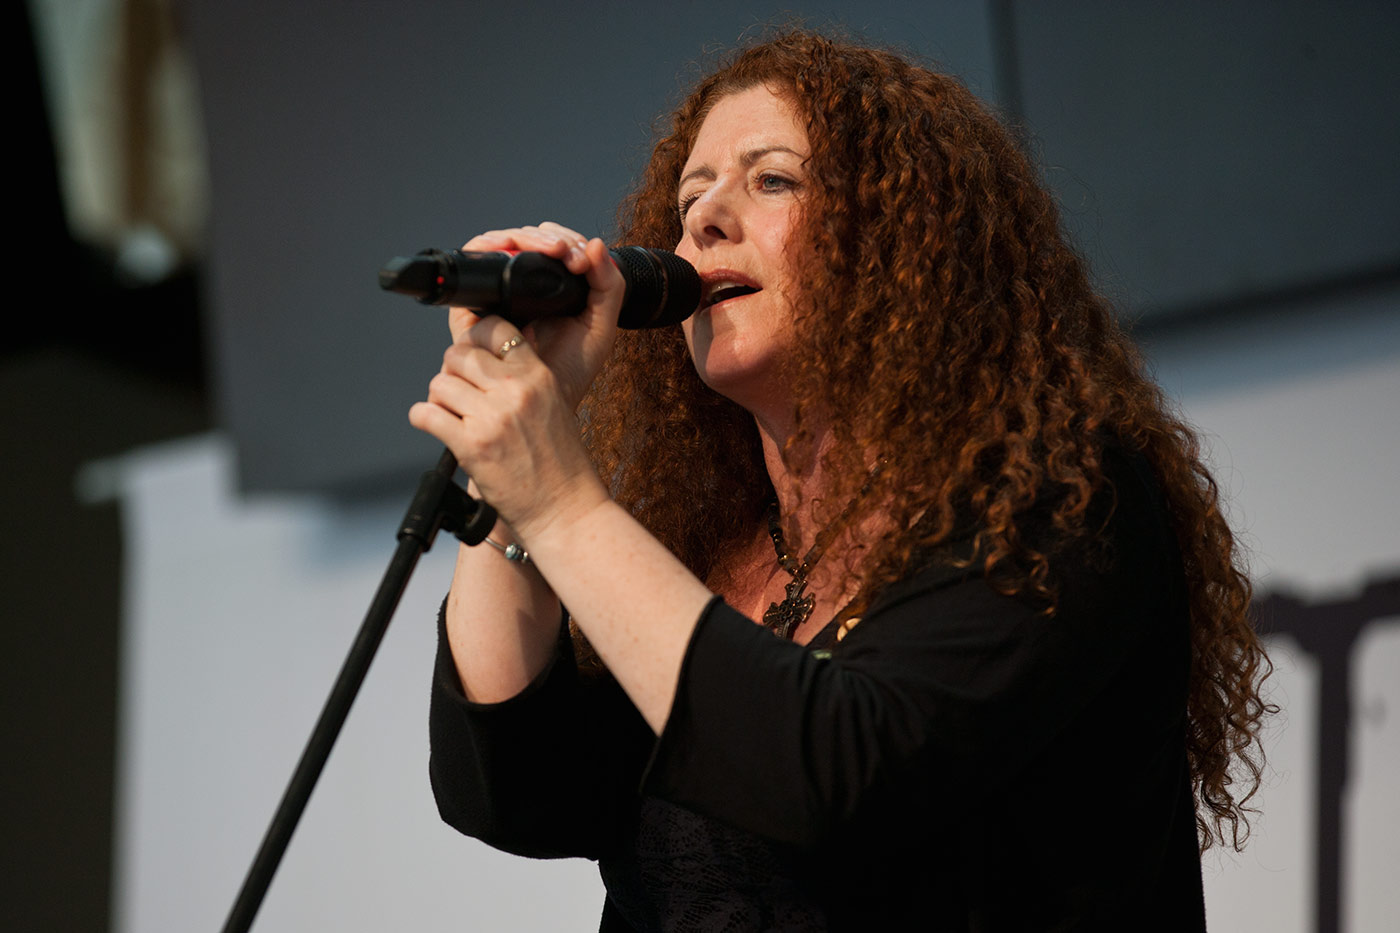 A woman with long flowing red hair is holding a microphone while looking directly at the camera. - click to view larger image